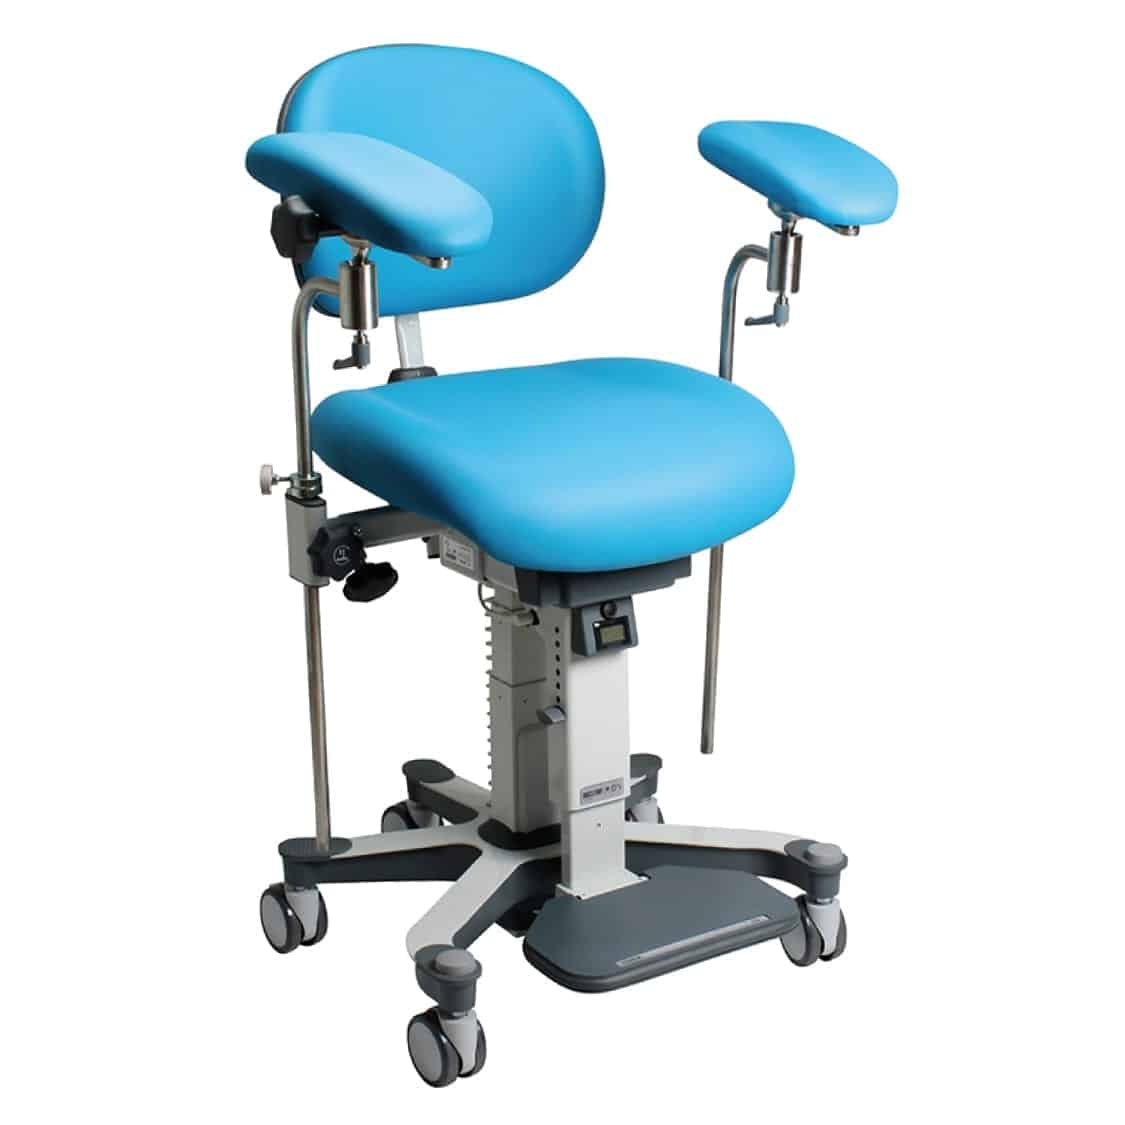 Jive Surgical Chair